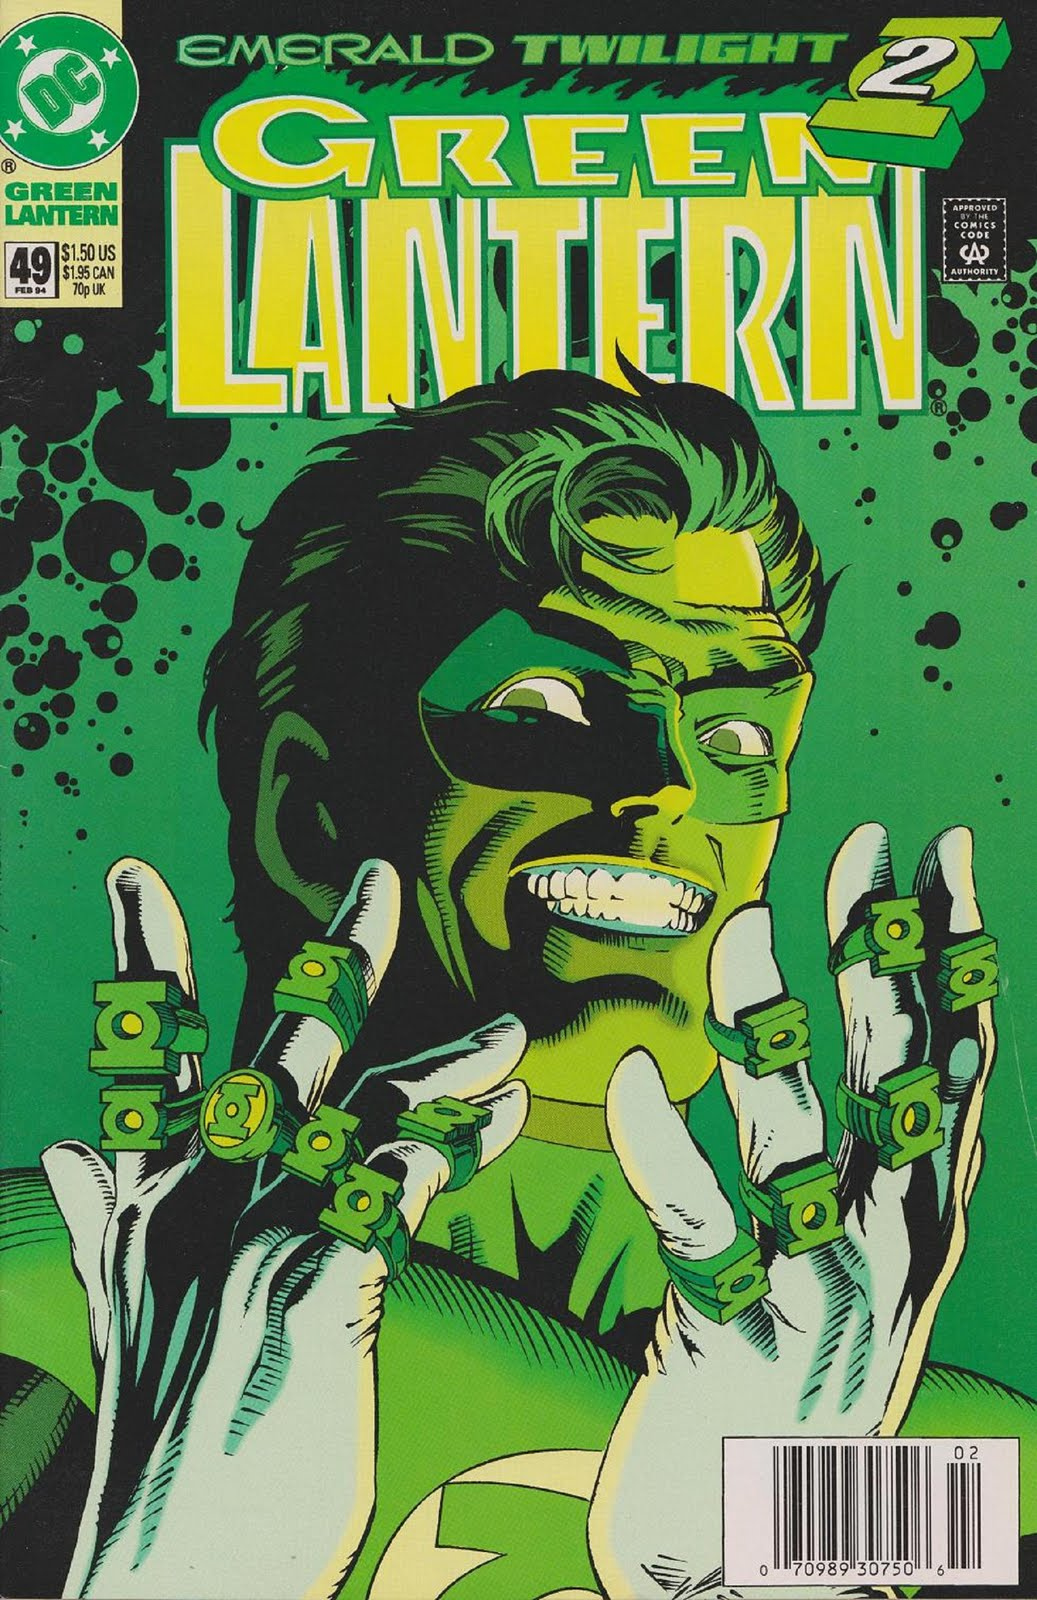 Green lantern ring comic - photo#27